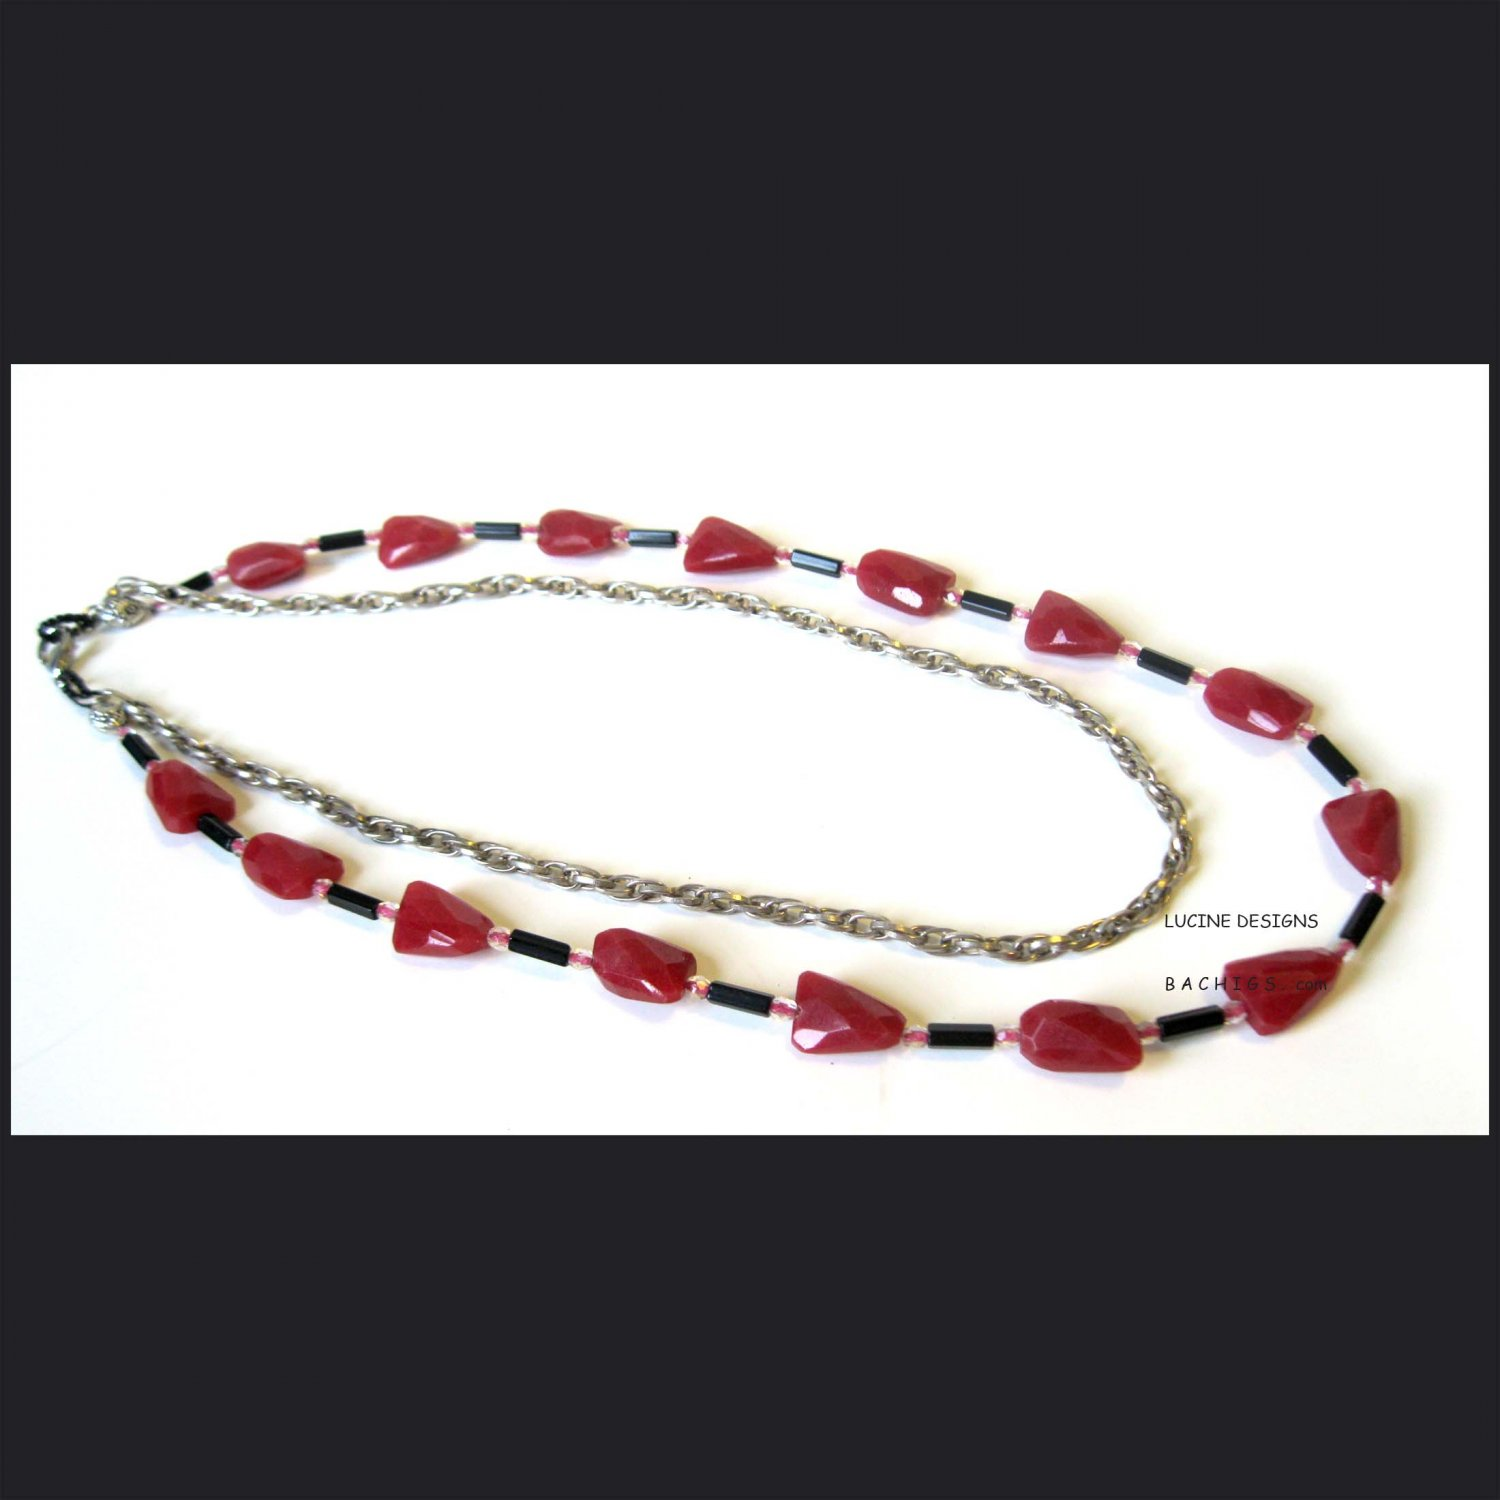 Ooak red semiprecious fashion necklace with silver and black, Jewelry, one of a kind, Chic